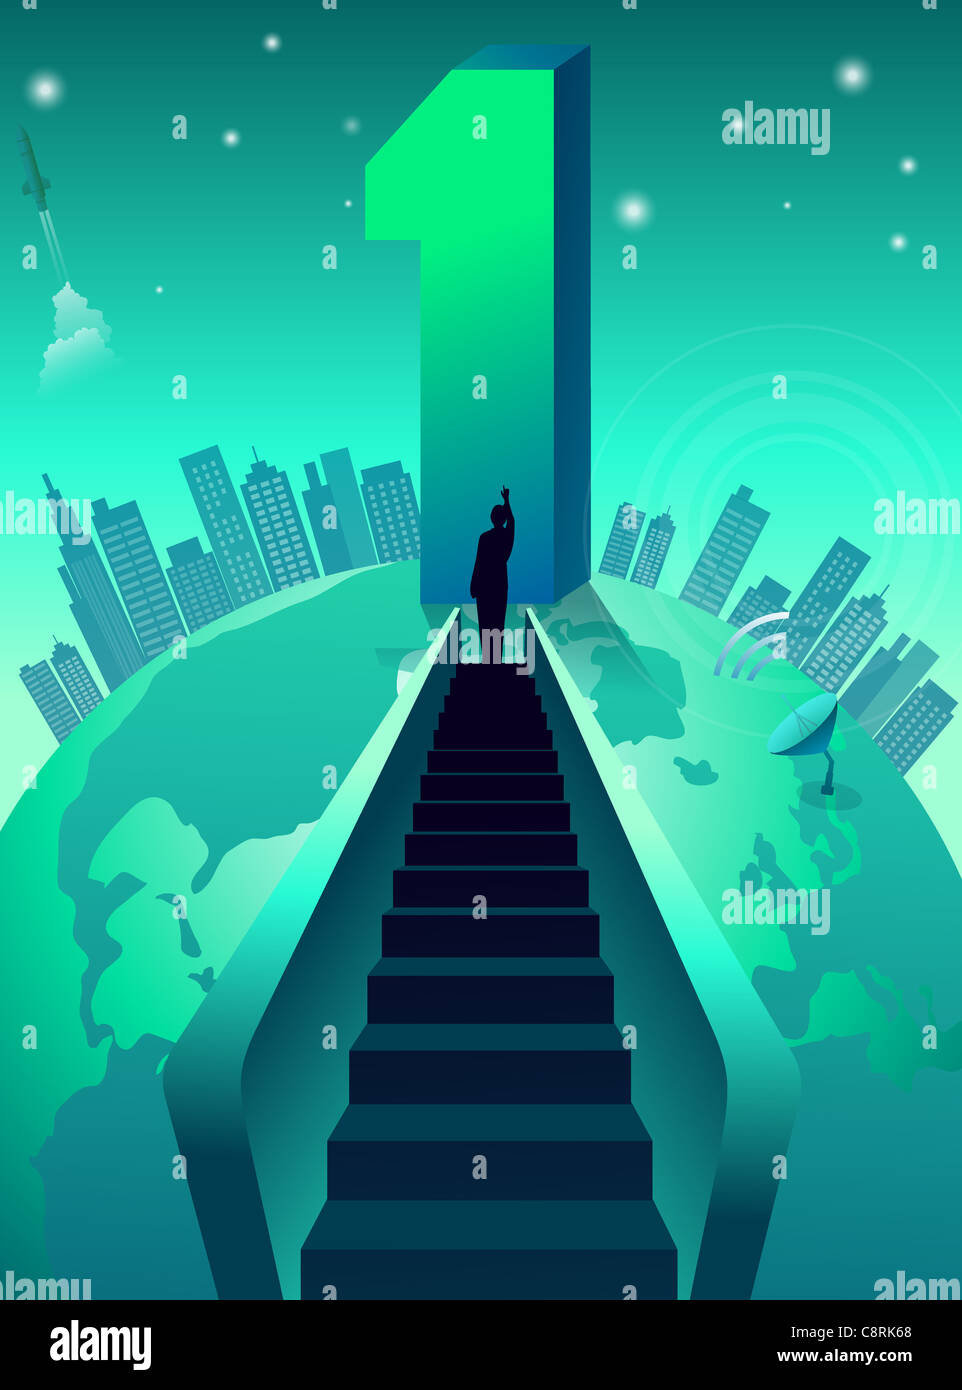 Illustration of a man and success - Stock Image